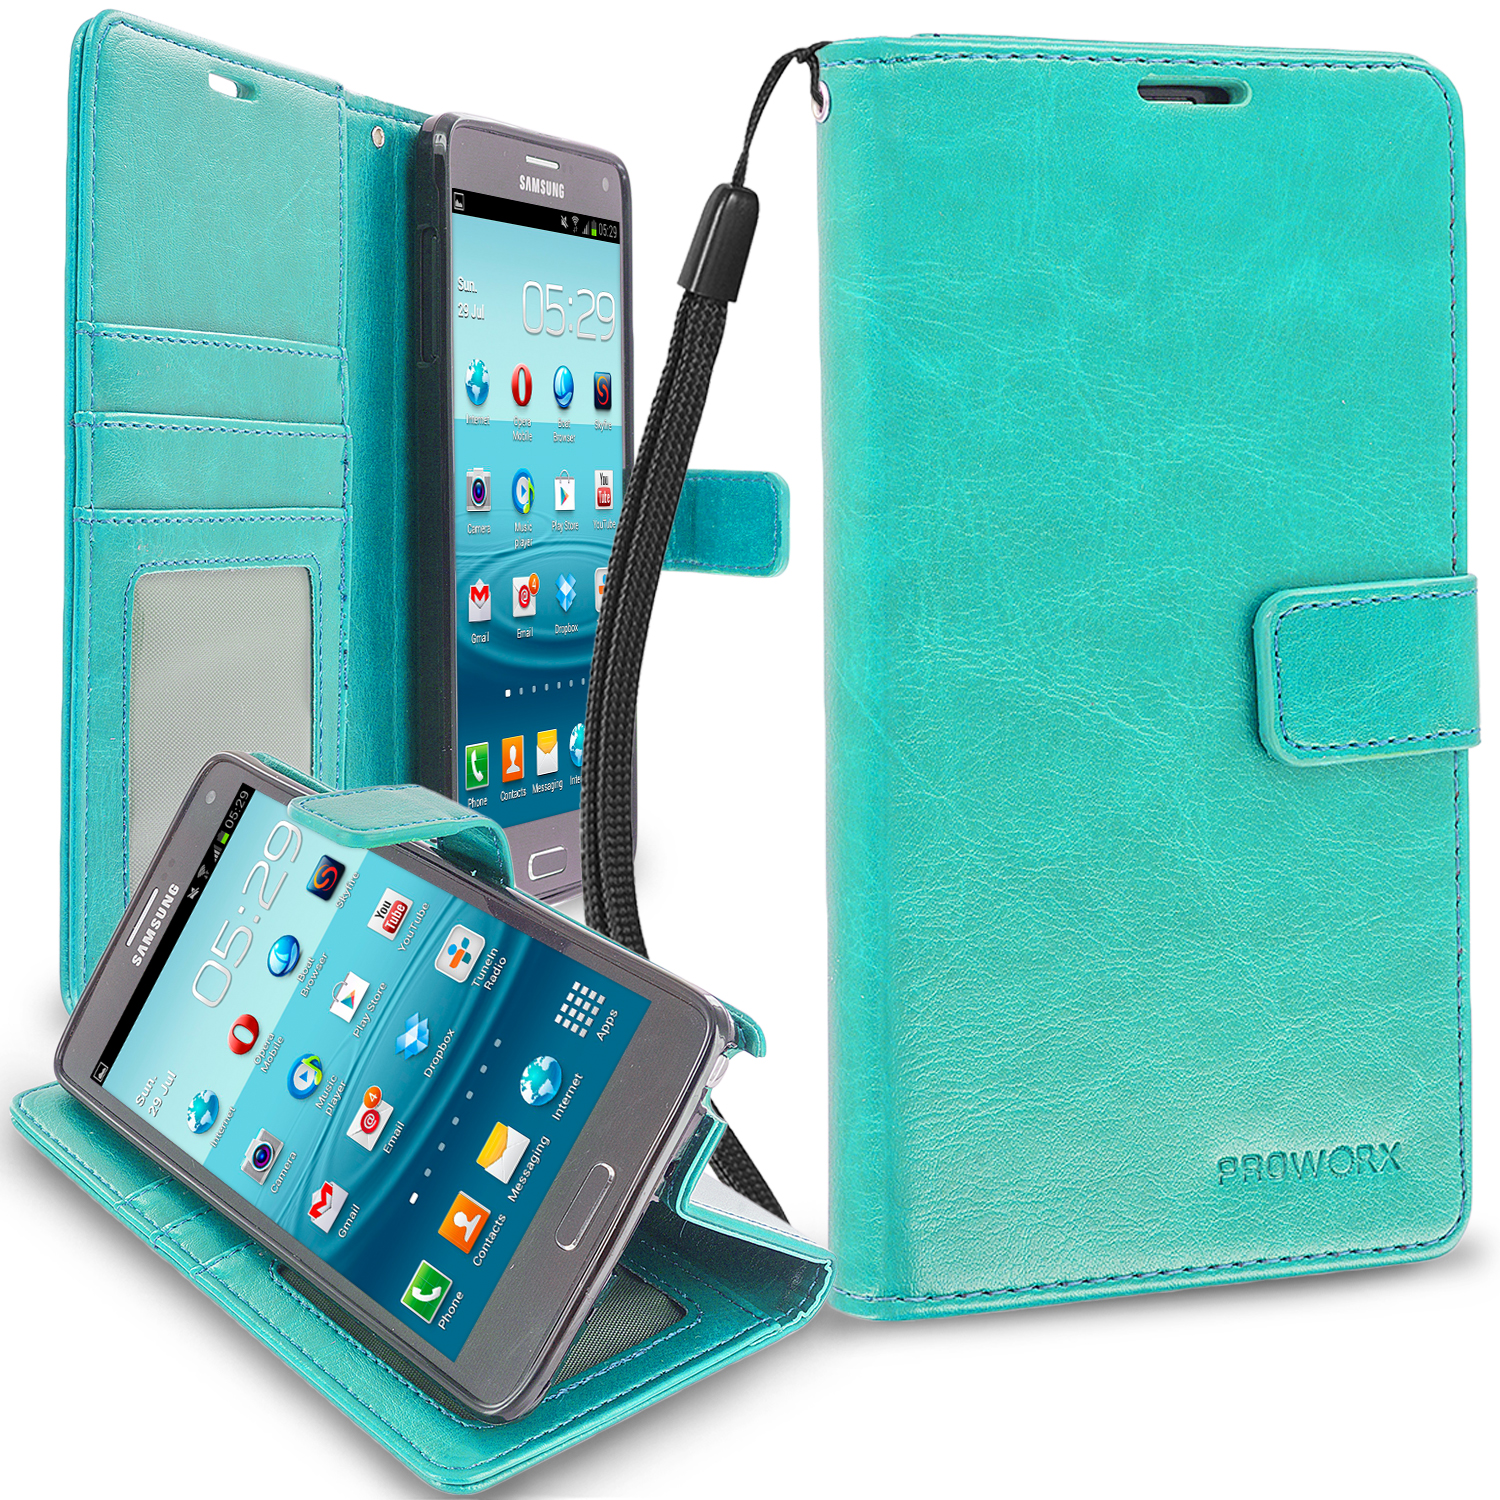 Samsung Galaxy Note 4 Mint Green ProWorx Wallet Case Luxury PU Leather Case Cover With Card Slots & Stand